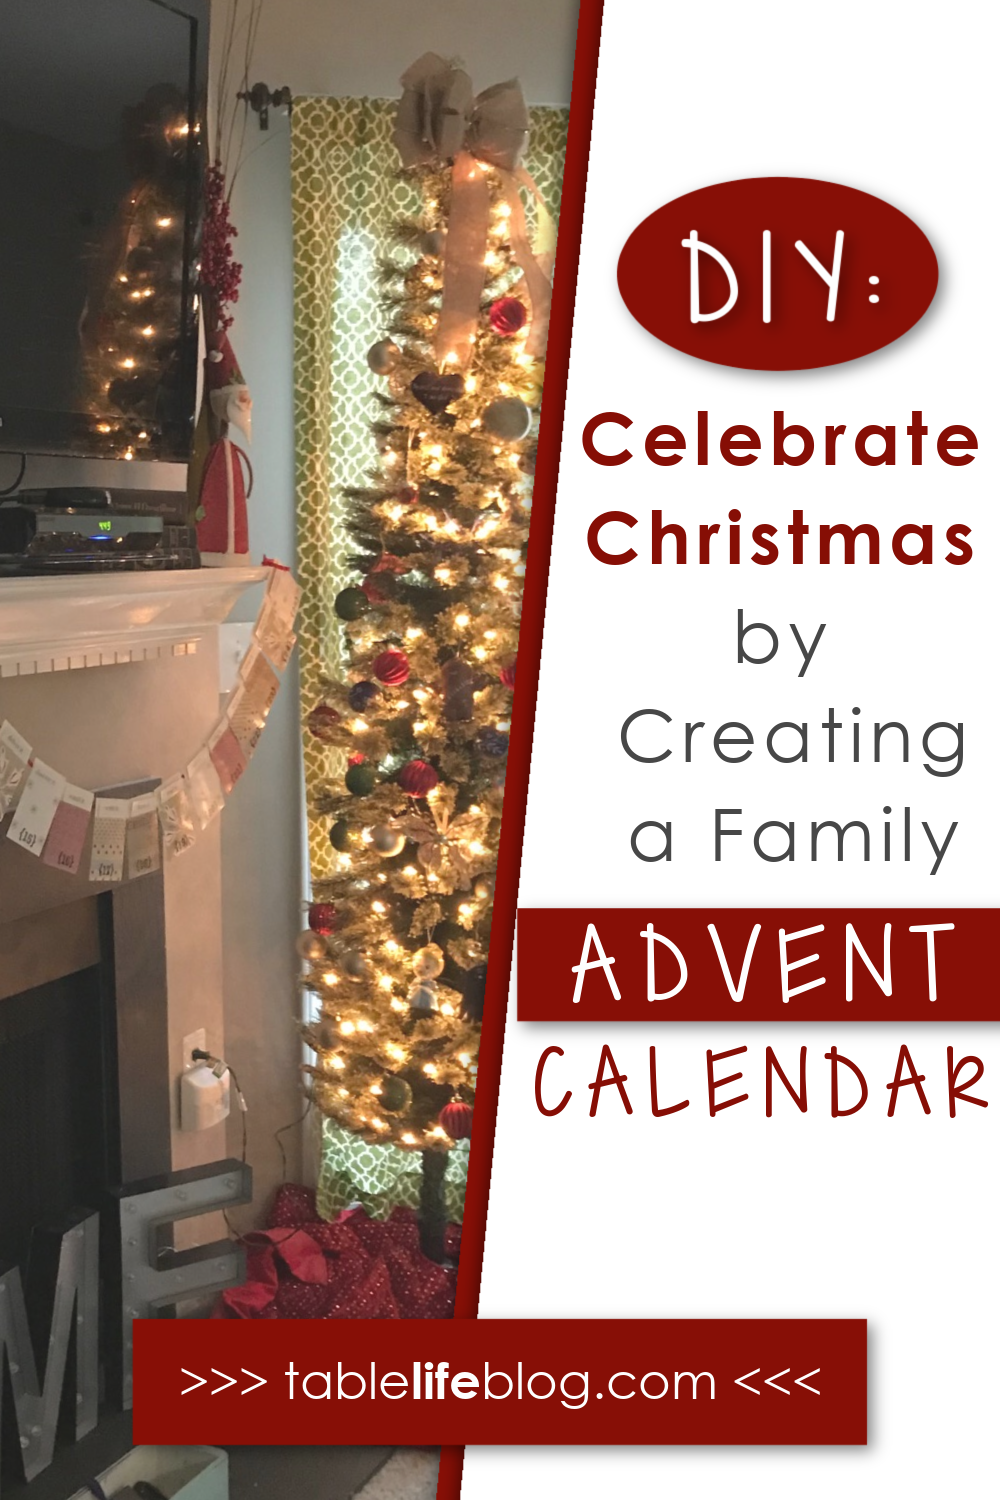 Looking for something special to add to your Christmas season this year? Why not celebrate this special holiday by making your own Advent calendar?